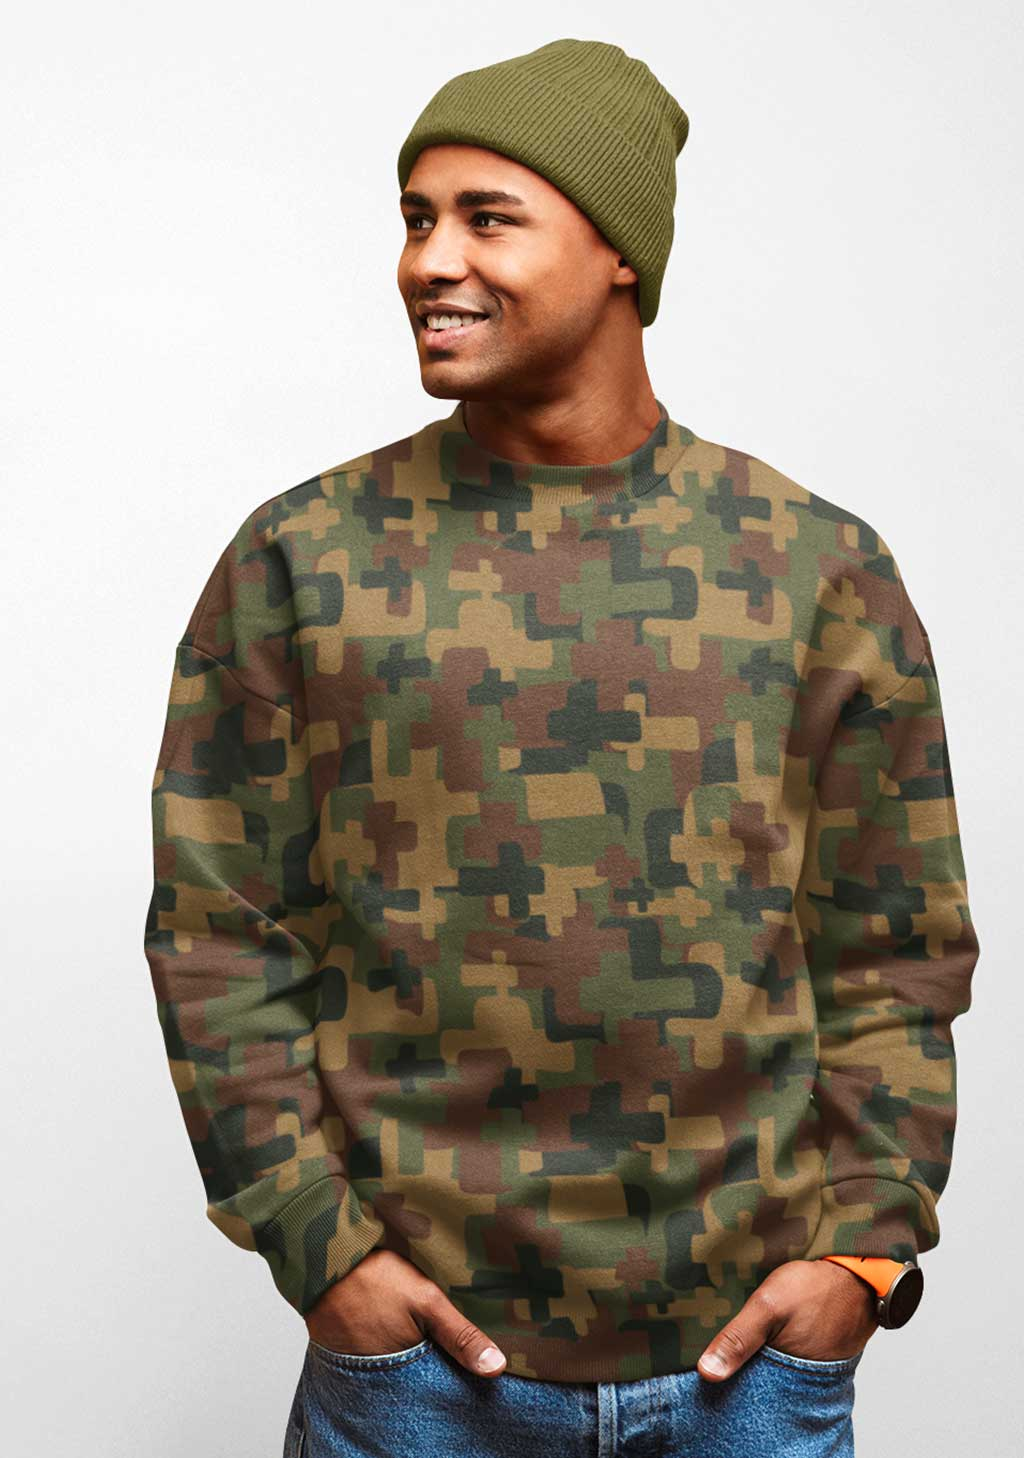 Samson Cross Camo Sweatshirt